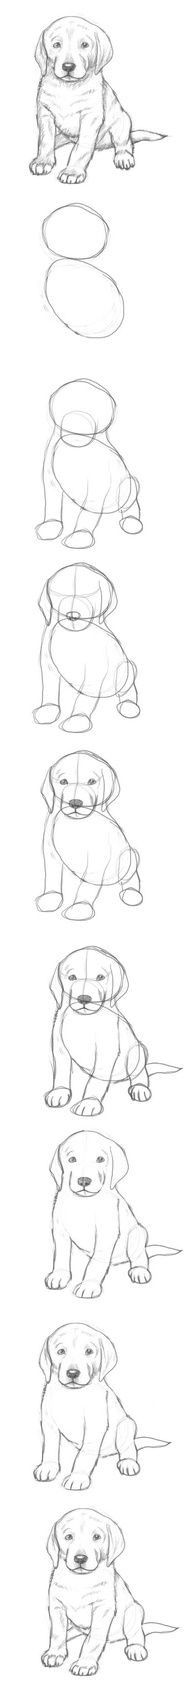 Step-by-step Puppy drawing